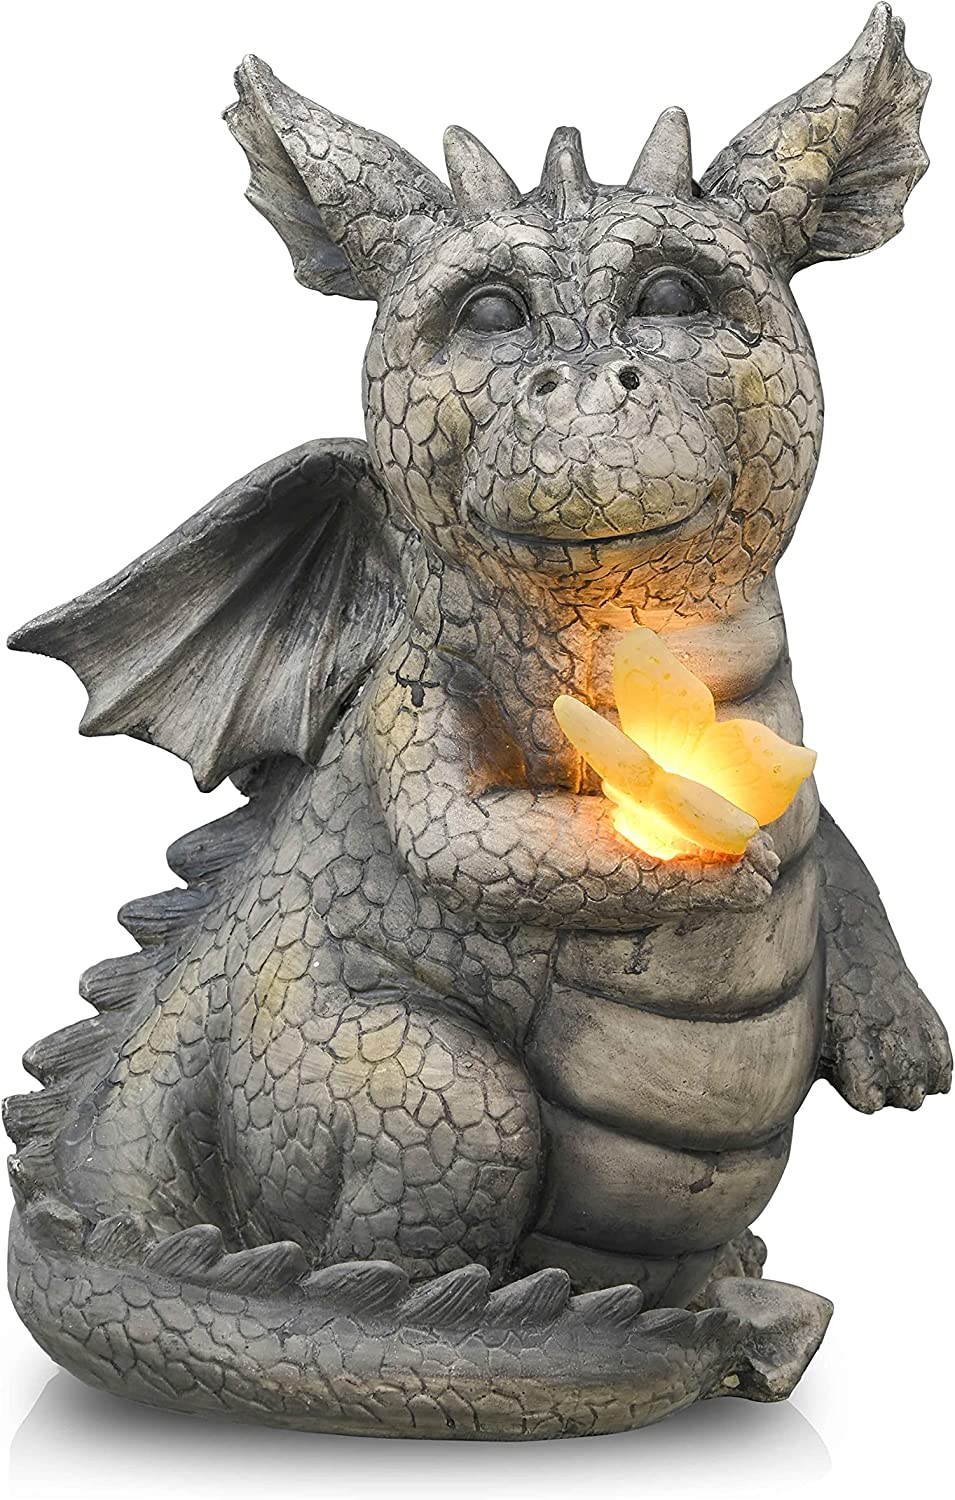 TERESA'S COLLECTIONS Pacific Dragon Garden Statues with Solar Lights, Stone Finished Siting Baby Dragon Garden Figurines and Sculpture for Home Outdoor Lawn Yard Decor ( 9.1 Inch Tall)